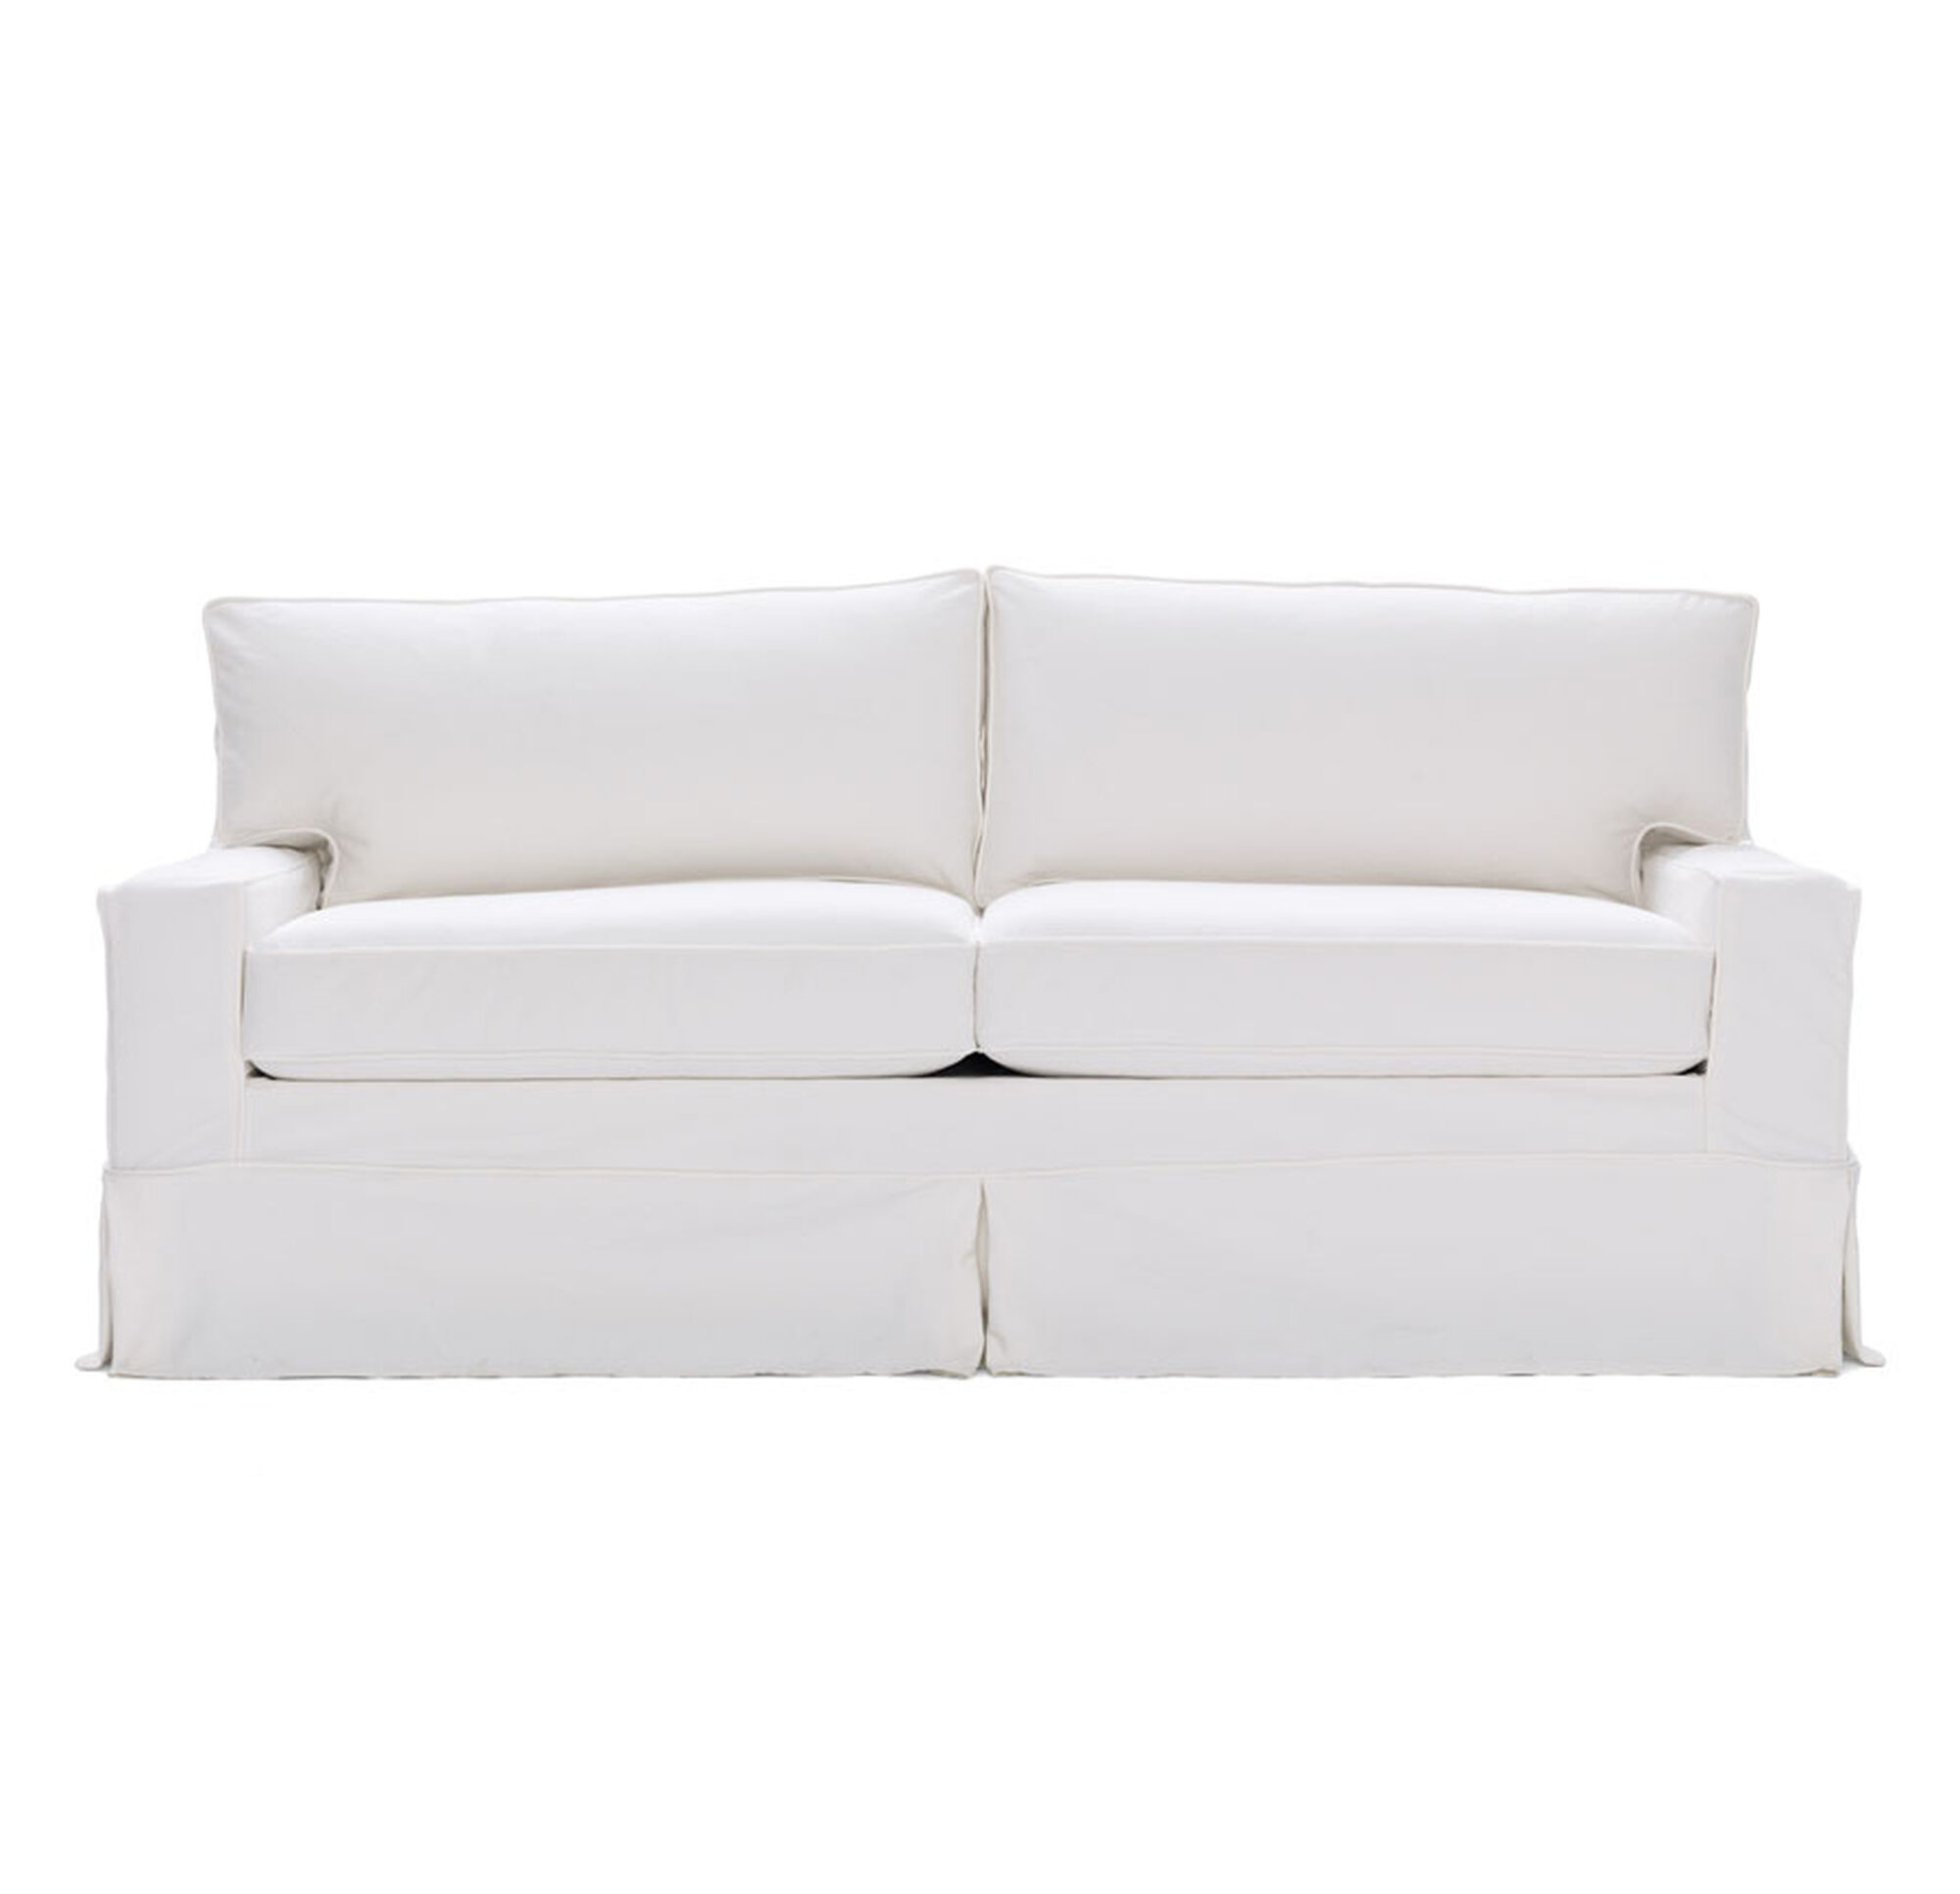 mitchell gold sleeper sofa